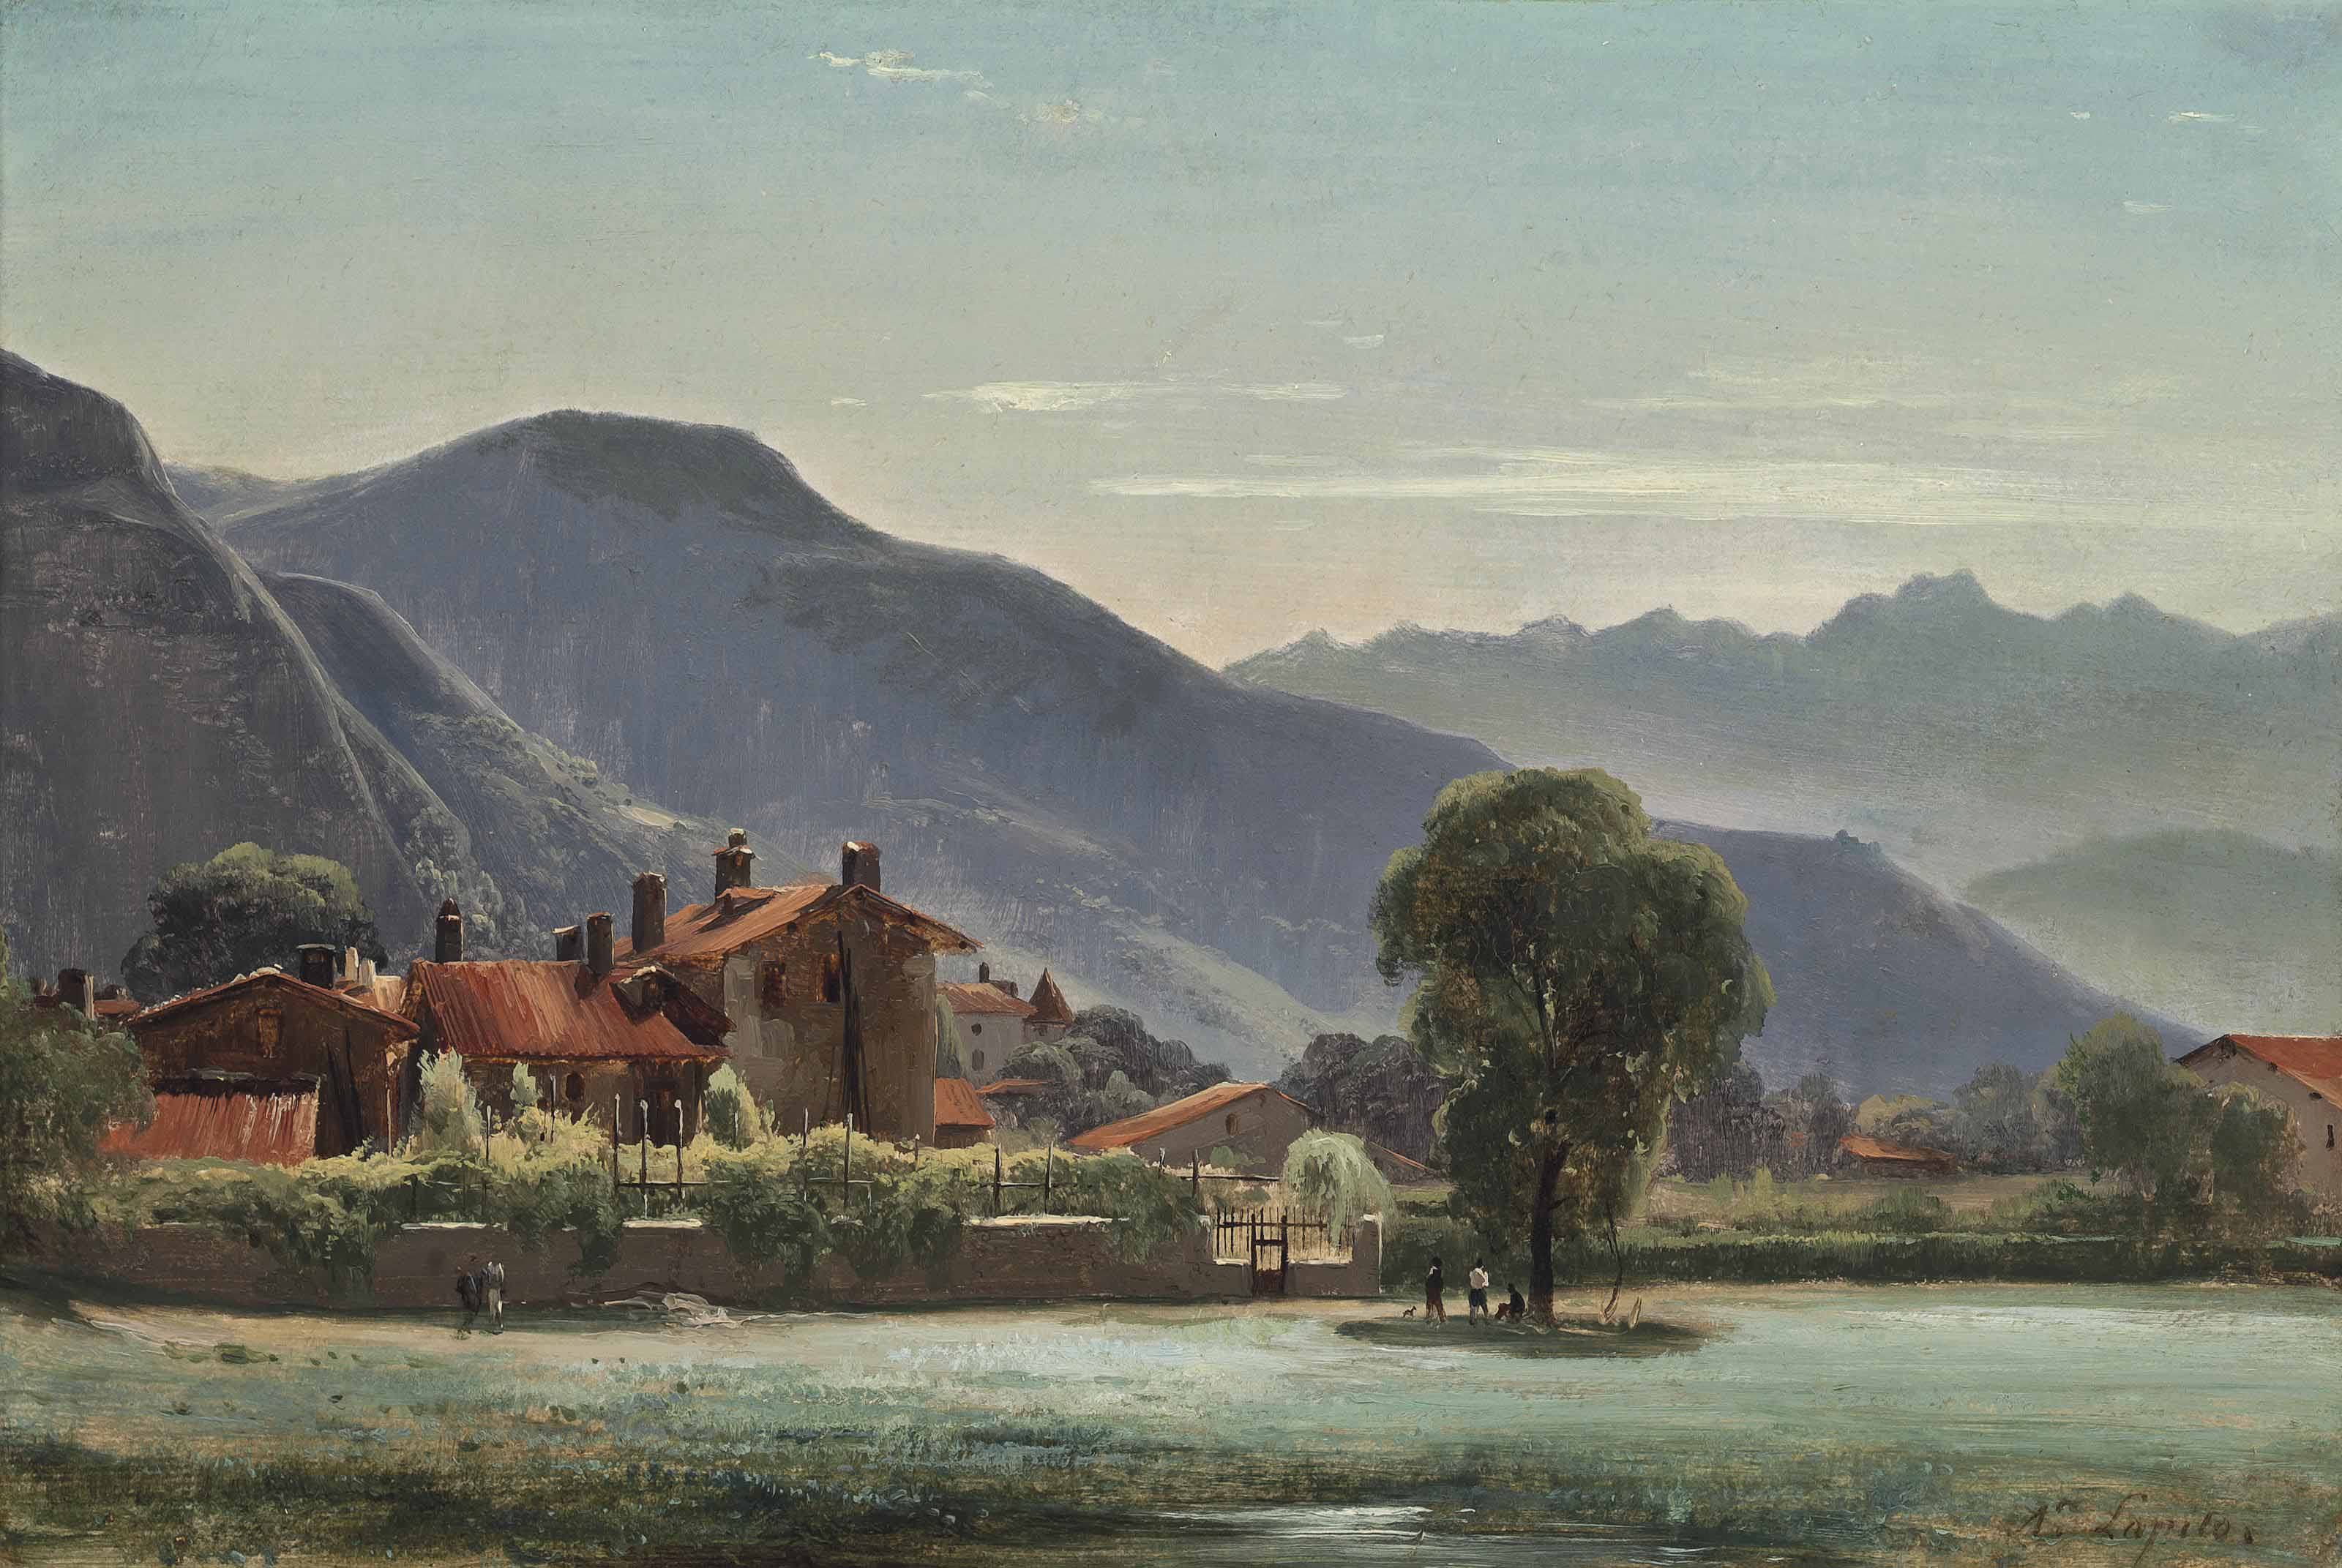 A village in the mountains